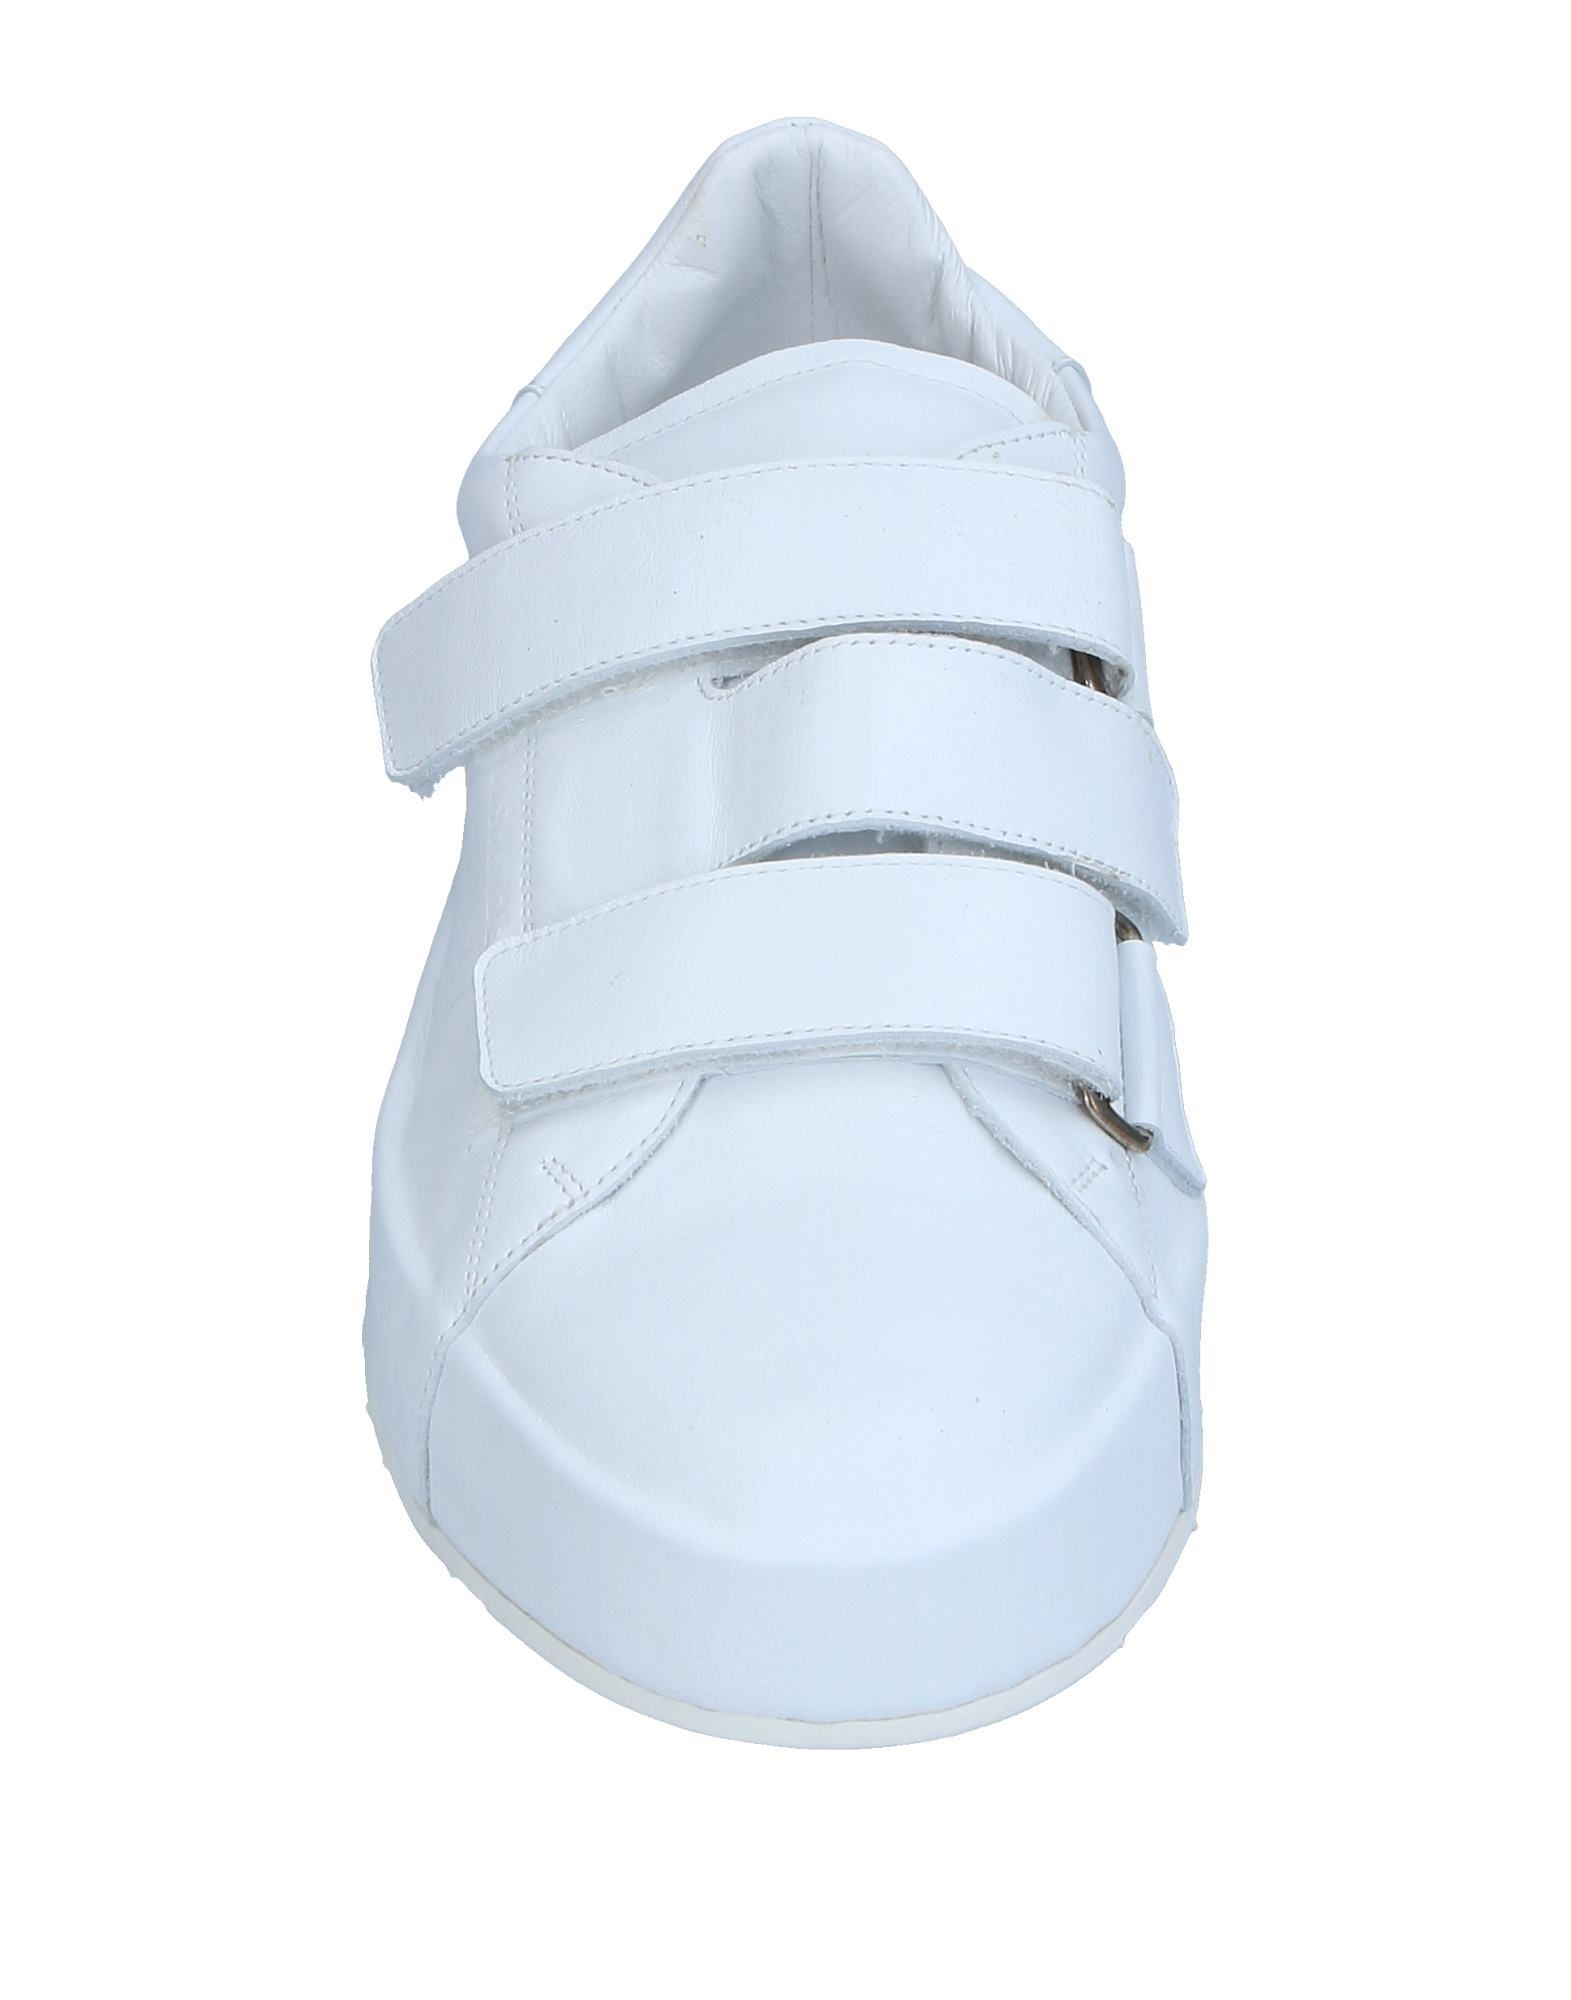 FOOTWEAR Jil Sander White Woman Leather